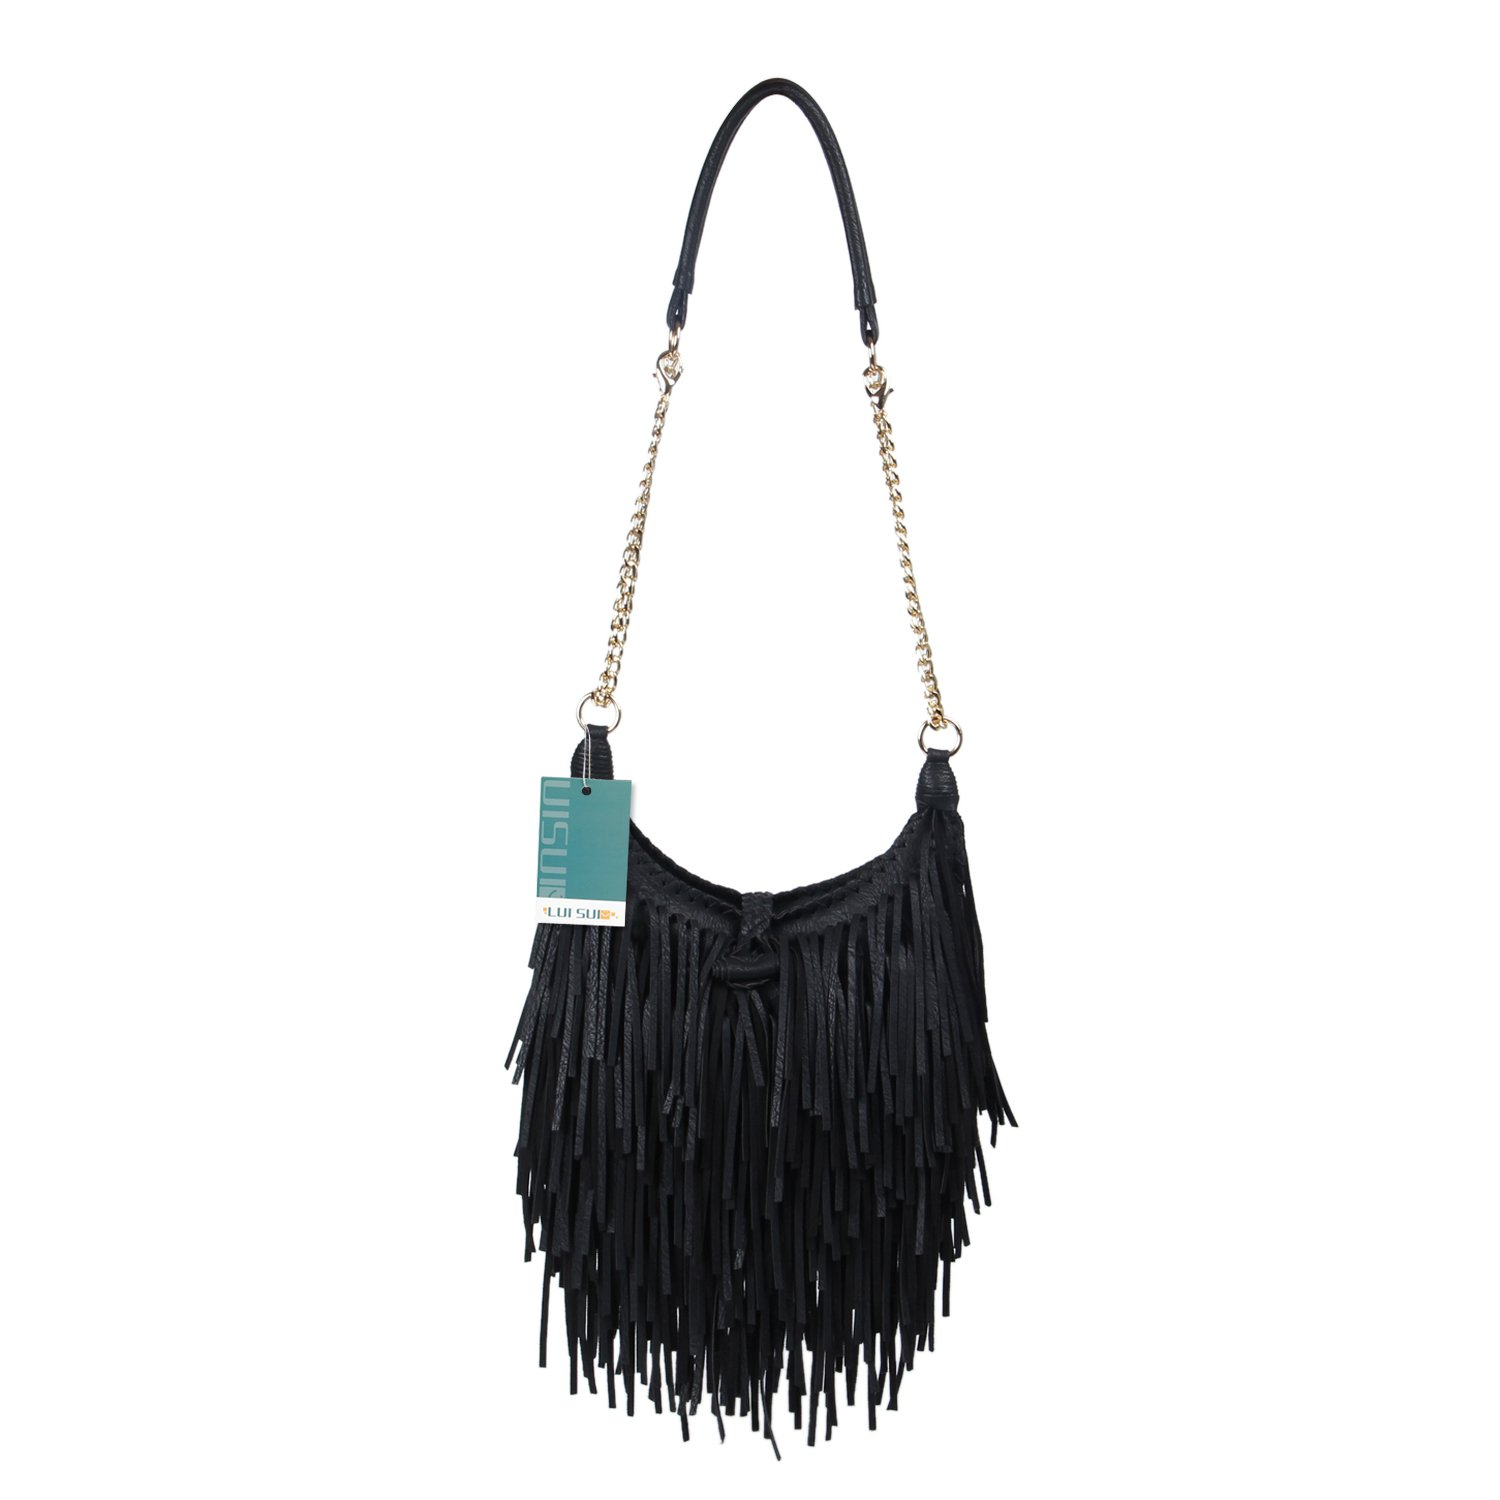 LUI SUI Women's Fashion Fringed Shoulder Bag Tassel Cross Body Bags (Black)